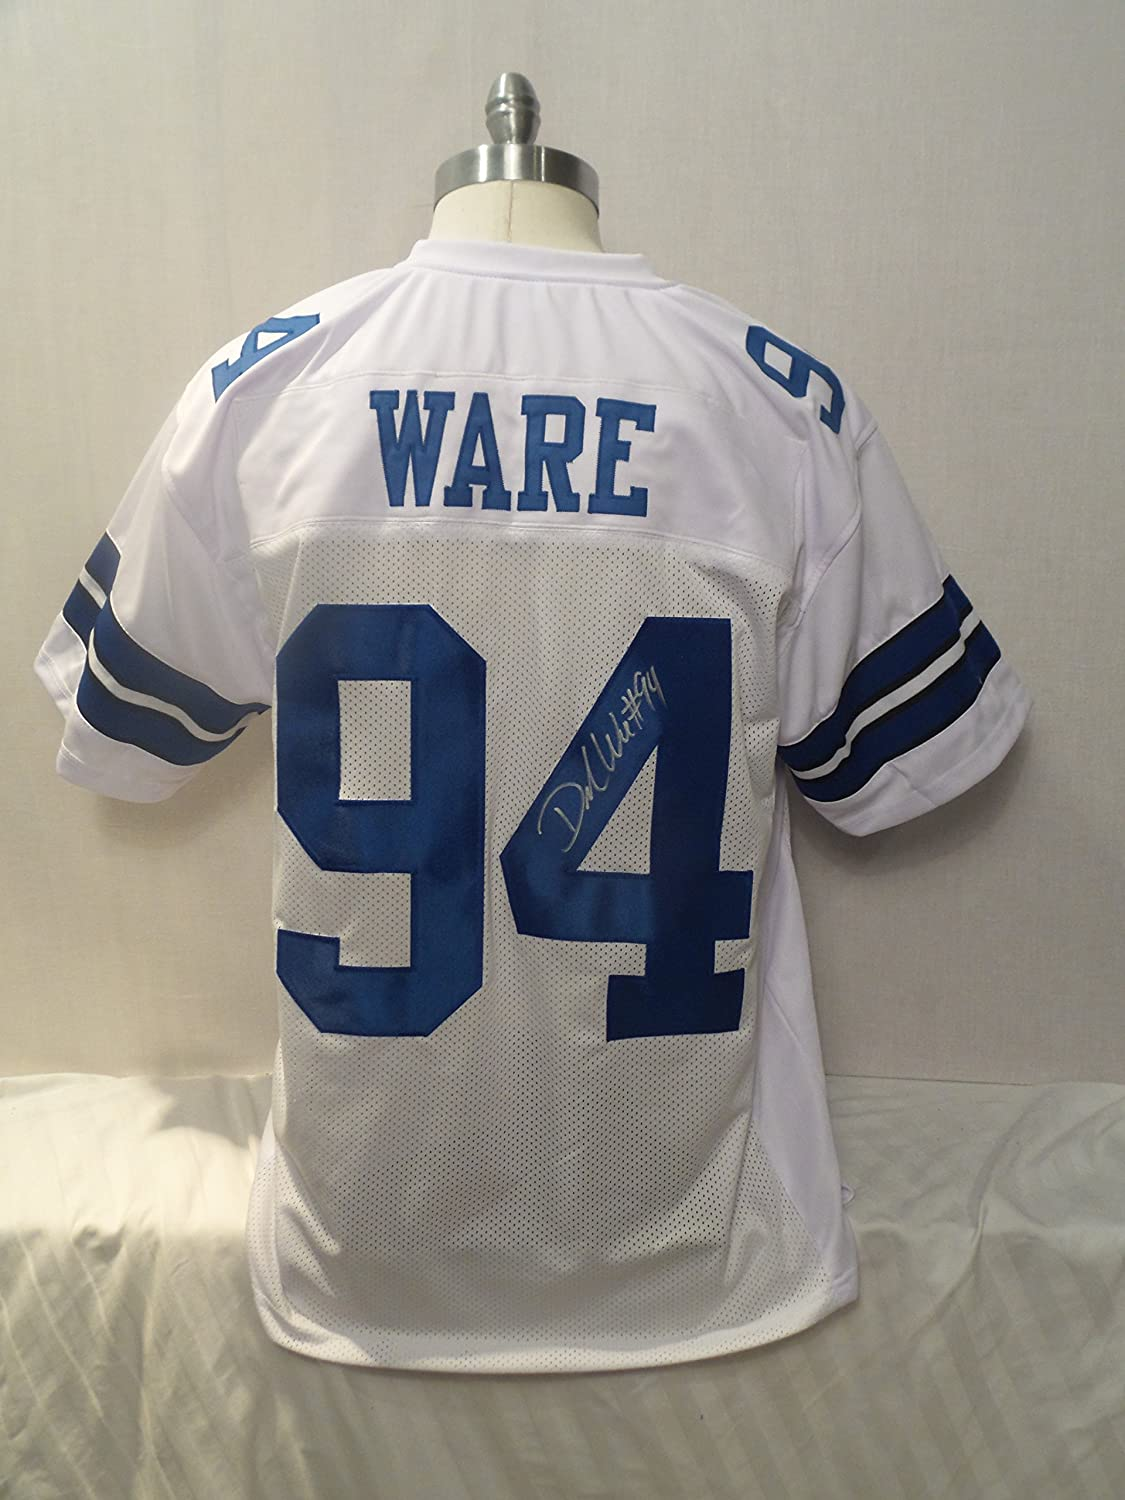 DeMarcus Ware Signed Dallas Cowboys White Autographed Jersey Novelty Custom Jersey